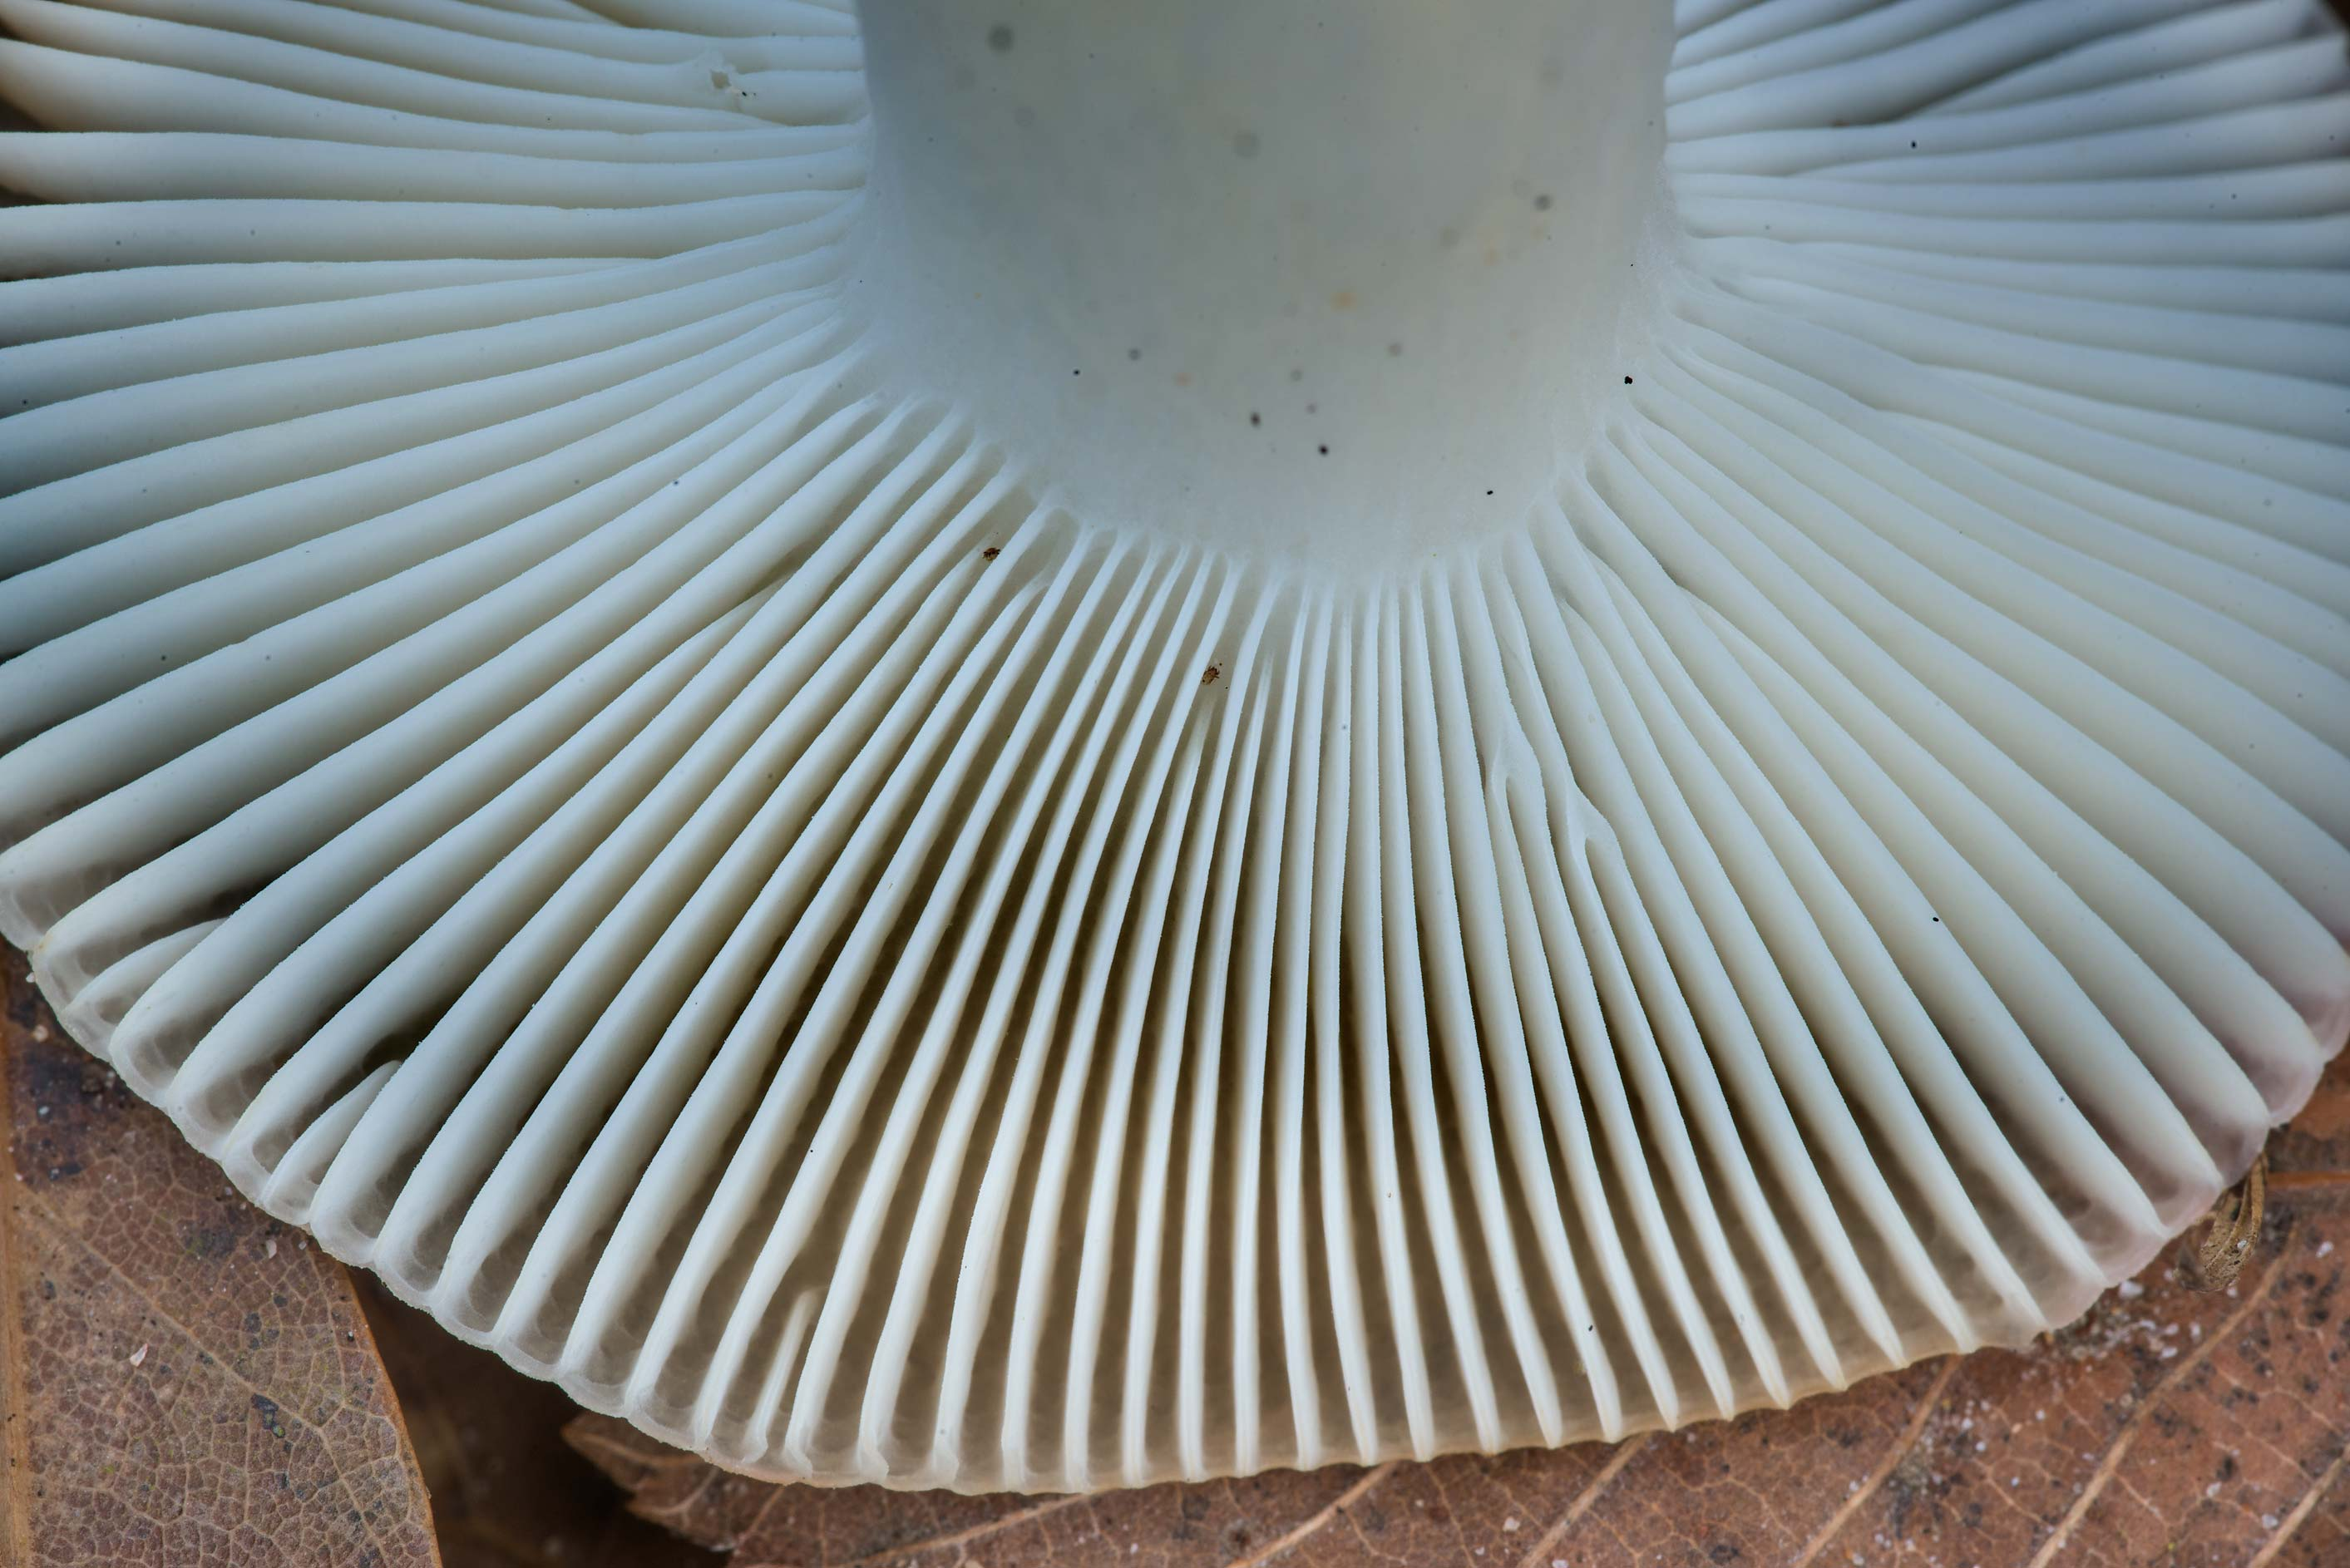 Gills of a pale brittlegill (Russula) mushroom on...in Sam Houston National Forest. Texas